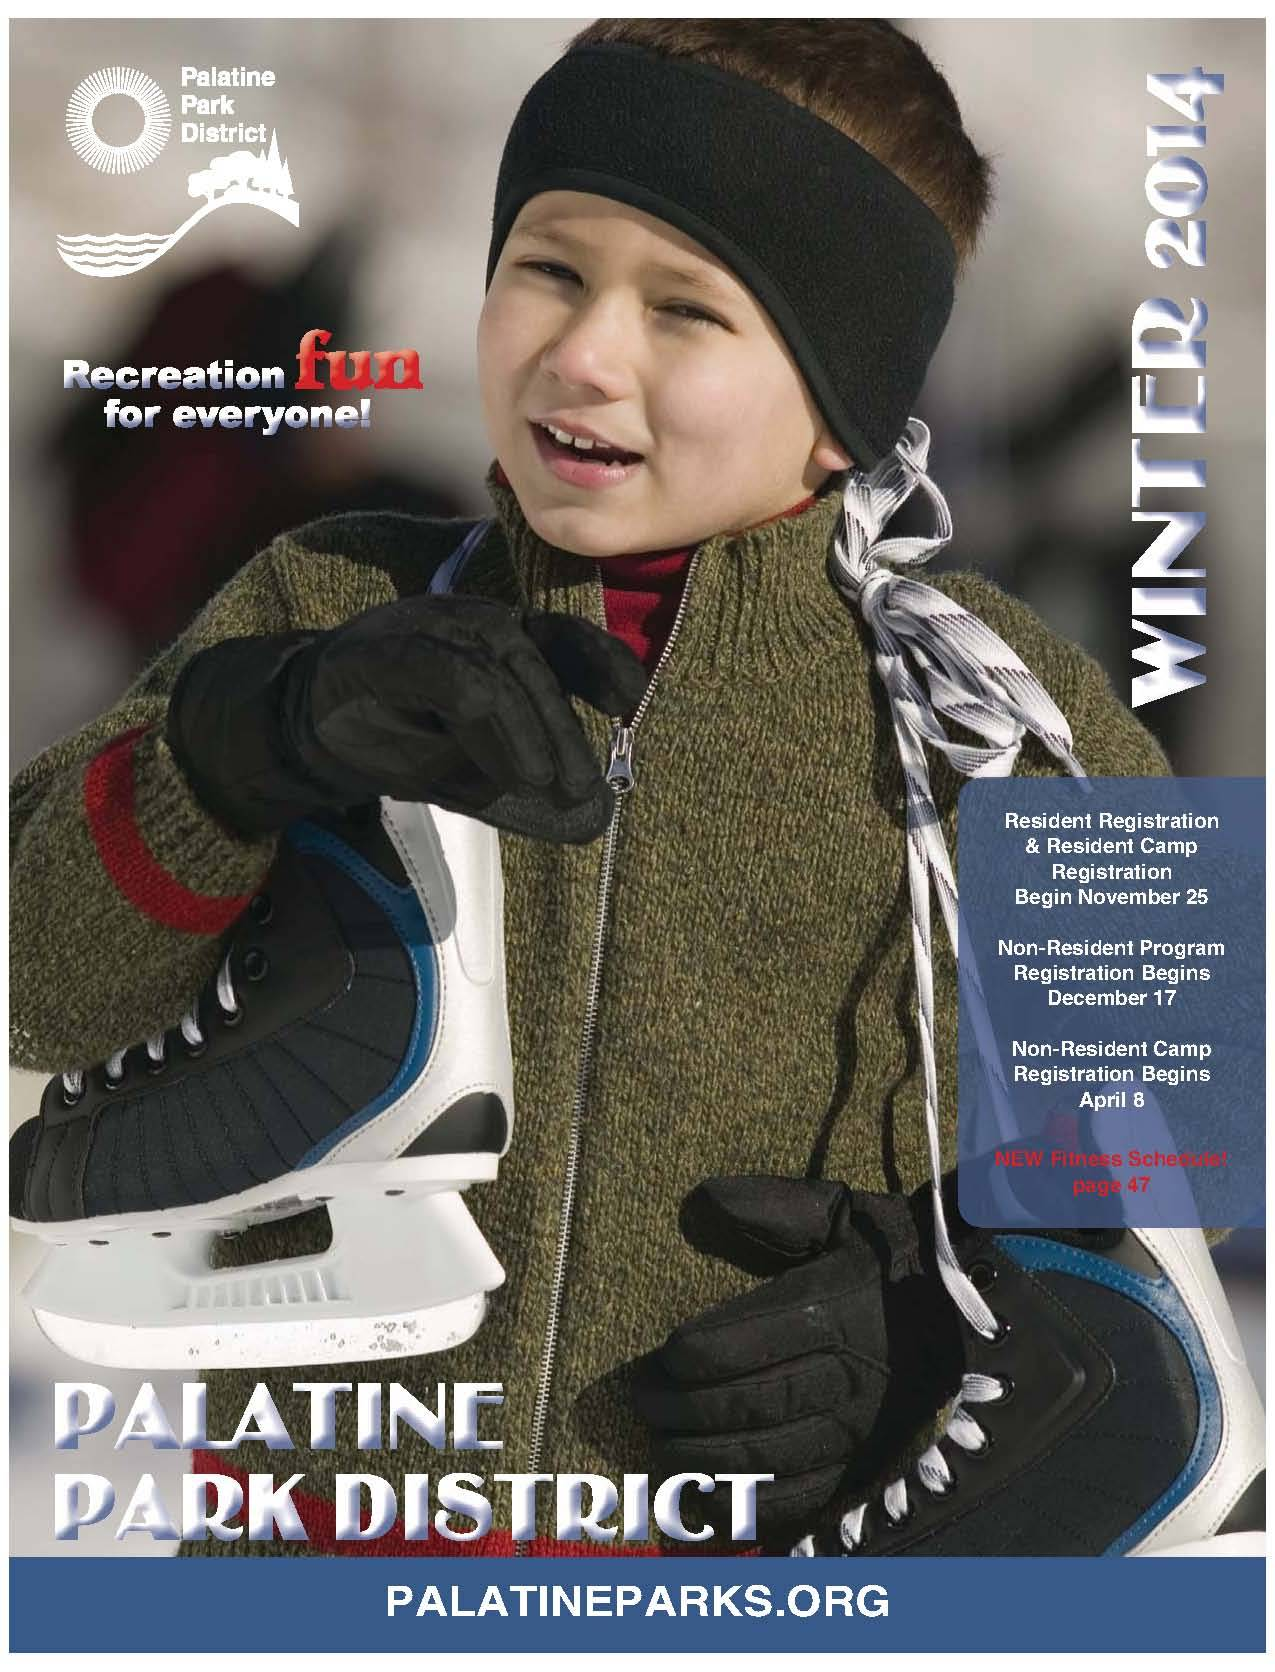 The new Winter Catalog will be Palatine Park District's first full color catalog.